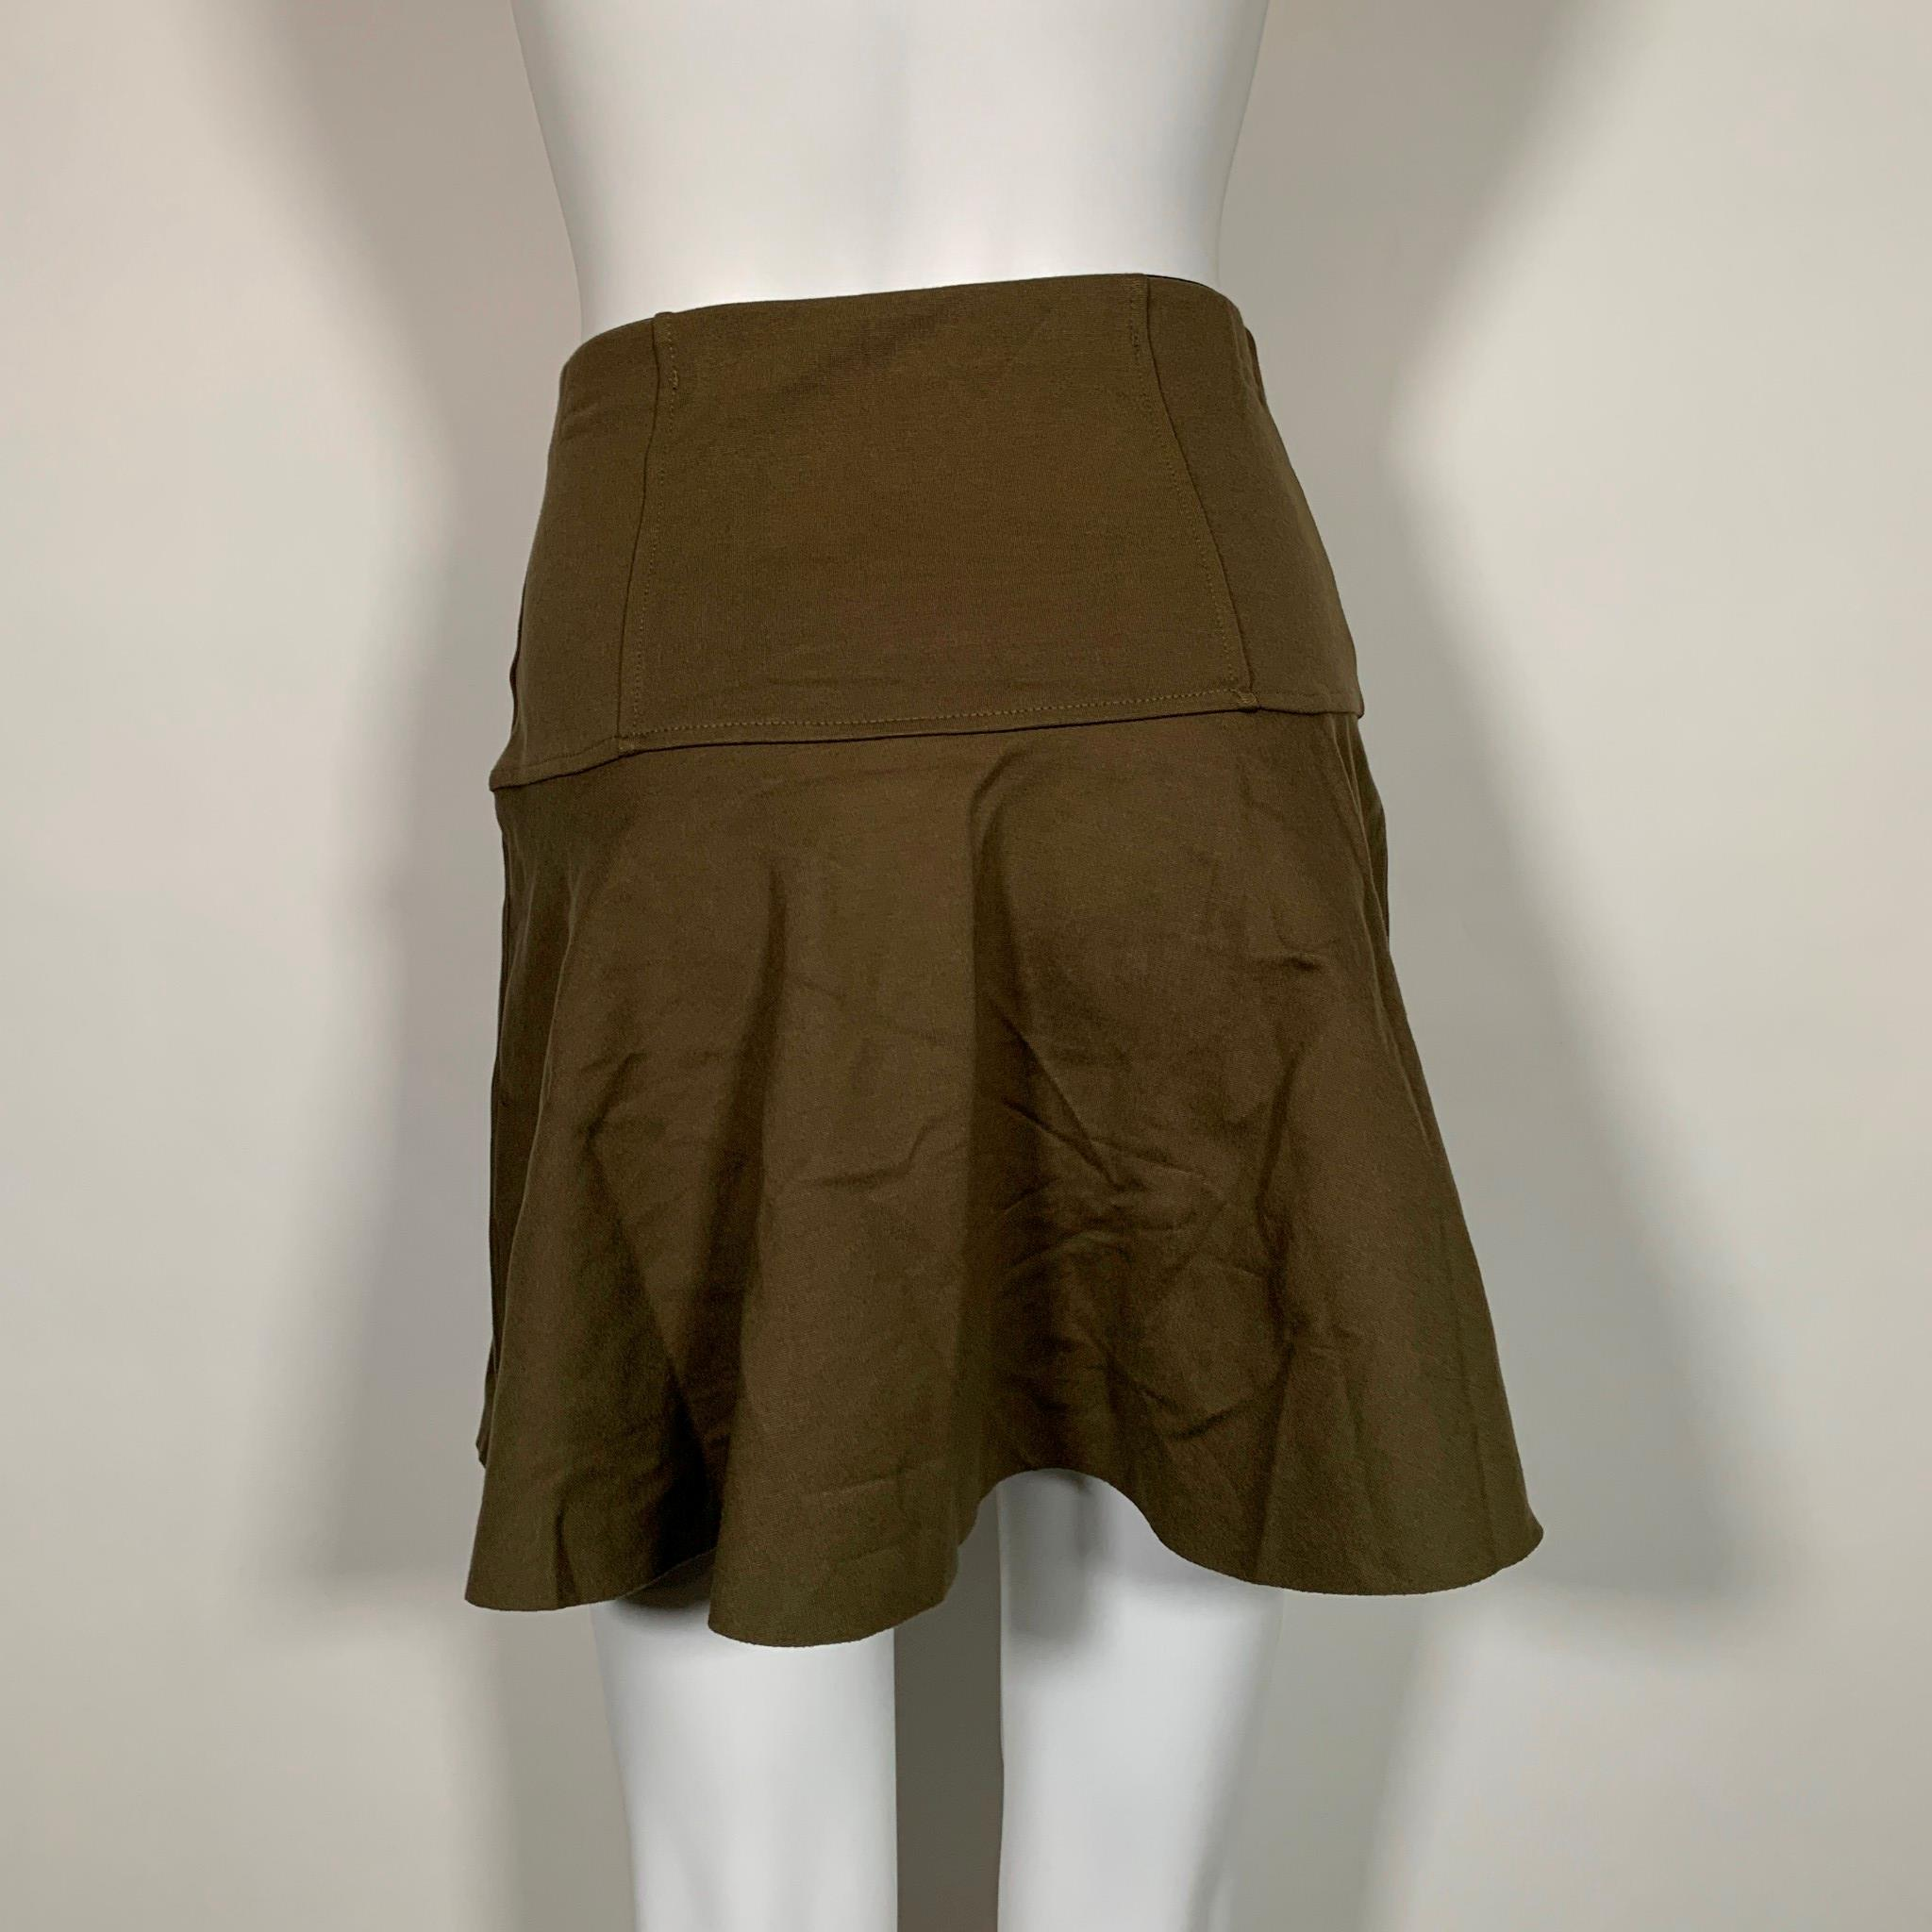 Details about  /Free People Skirt Mini Olive Green Sz S NEW NWT